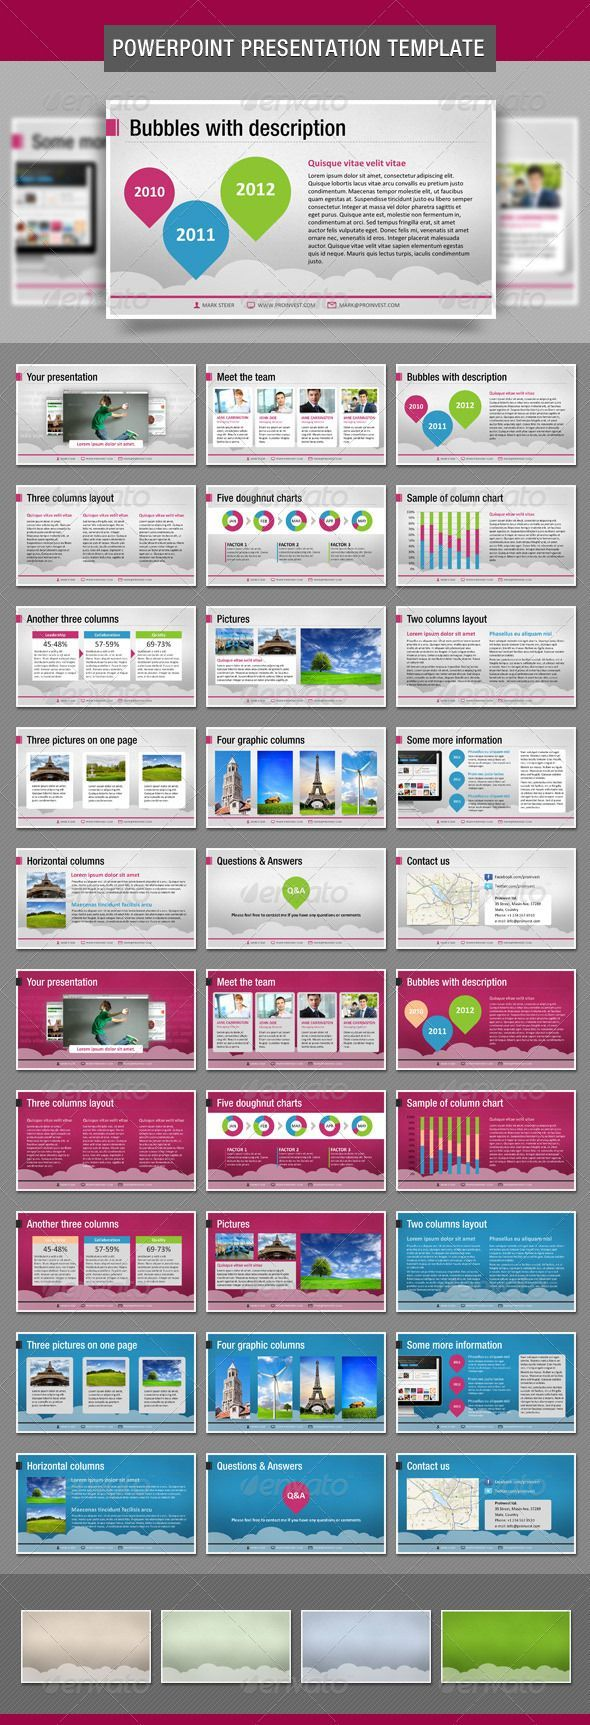 bubbles powerpoint presentation template | ppt design | pinterest, Modern powerpoint